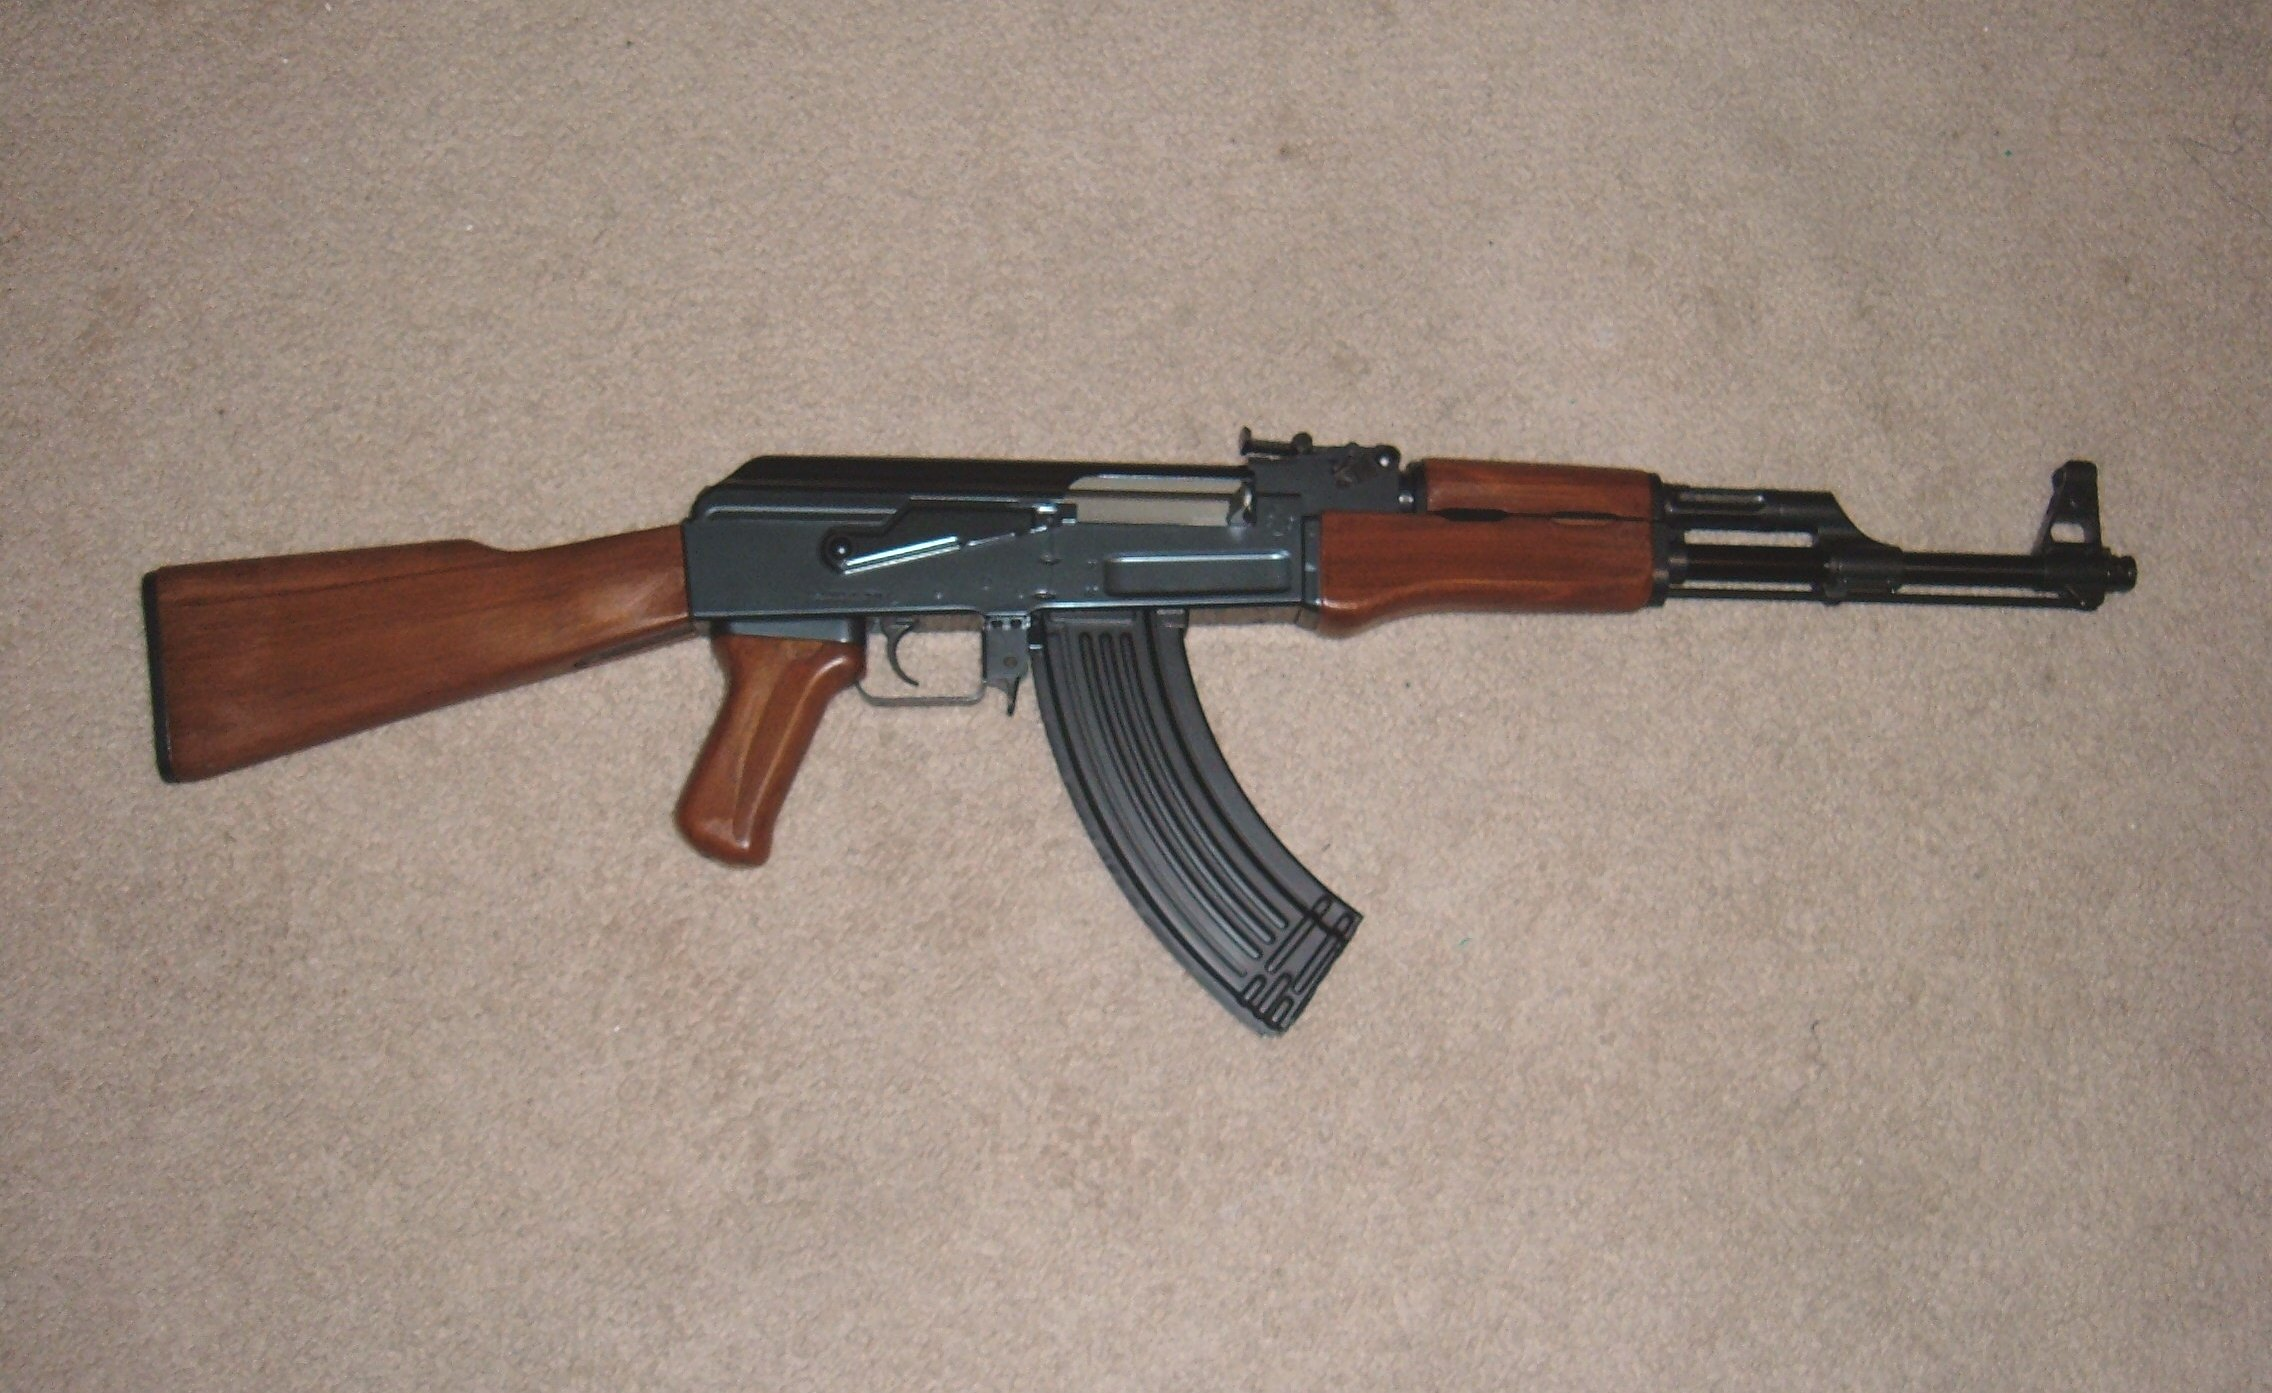 AK47 Kalashnikov Information and Pictures